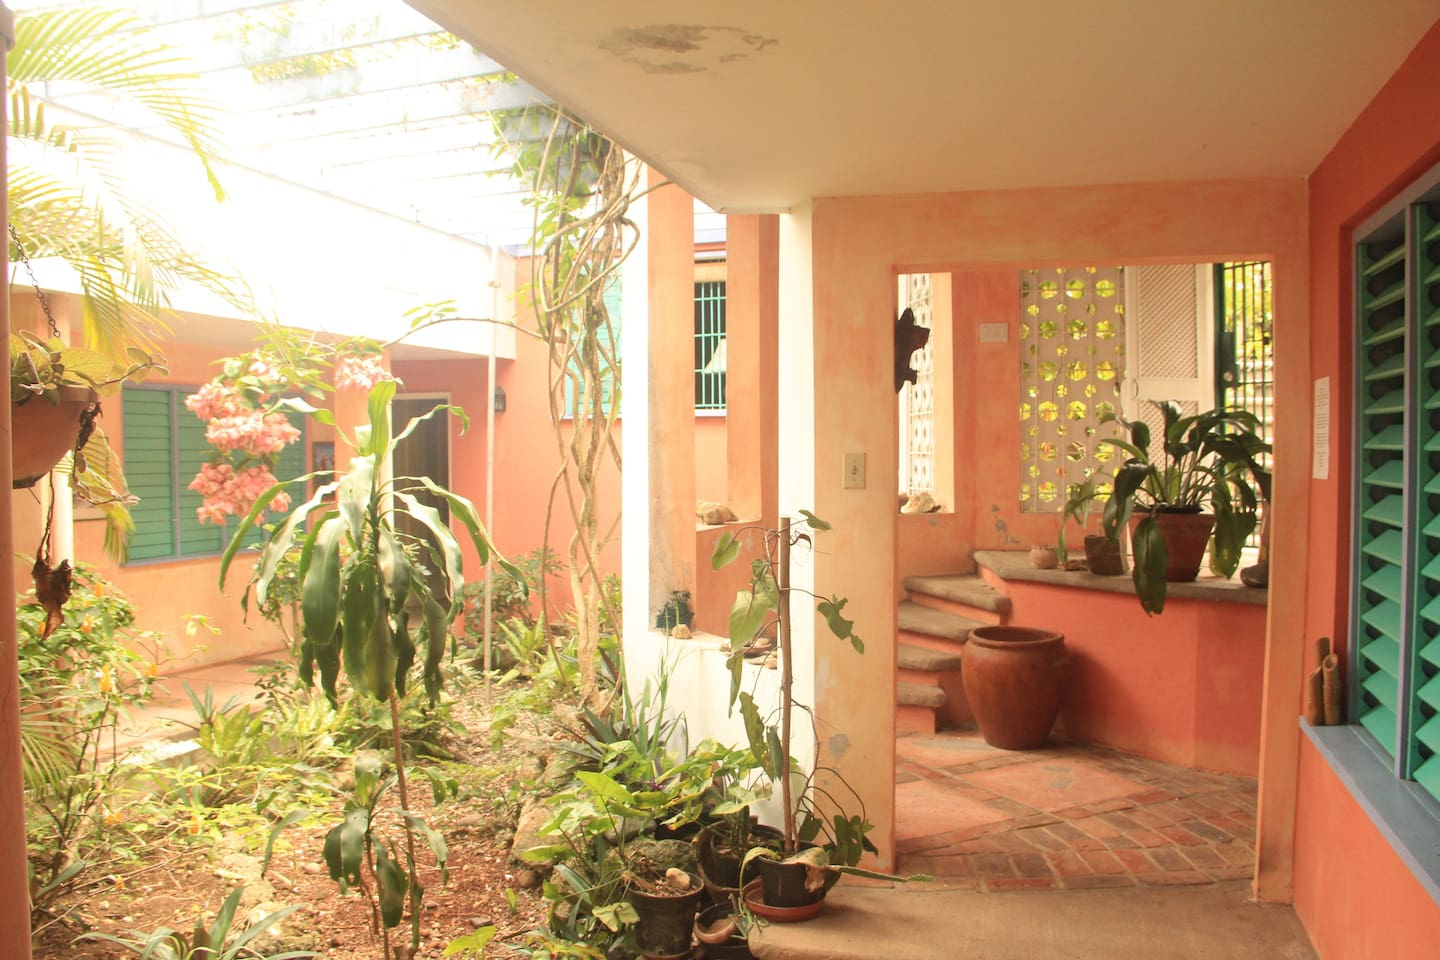 The Central garden courtyard, brings an inside outside relaxing ambiance to the whole place